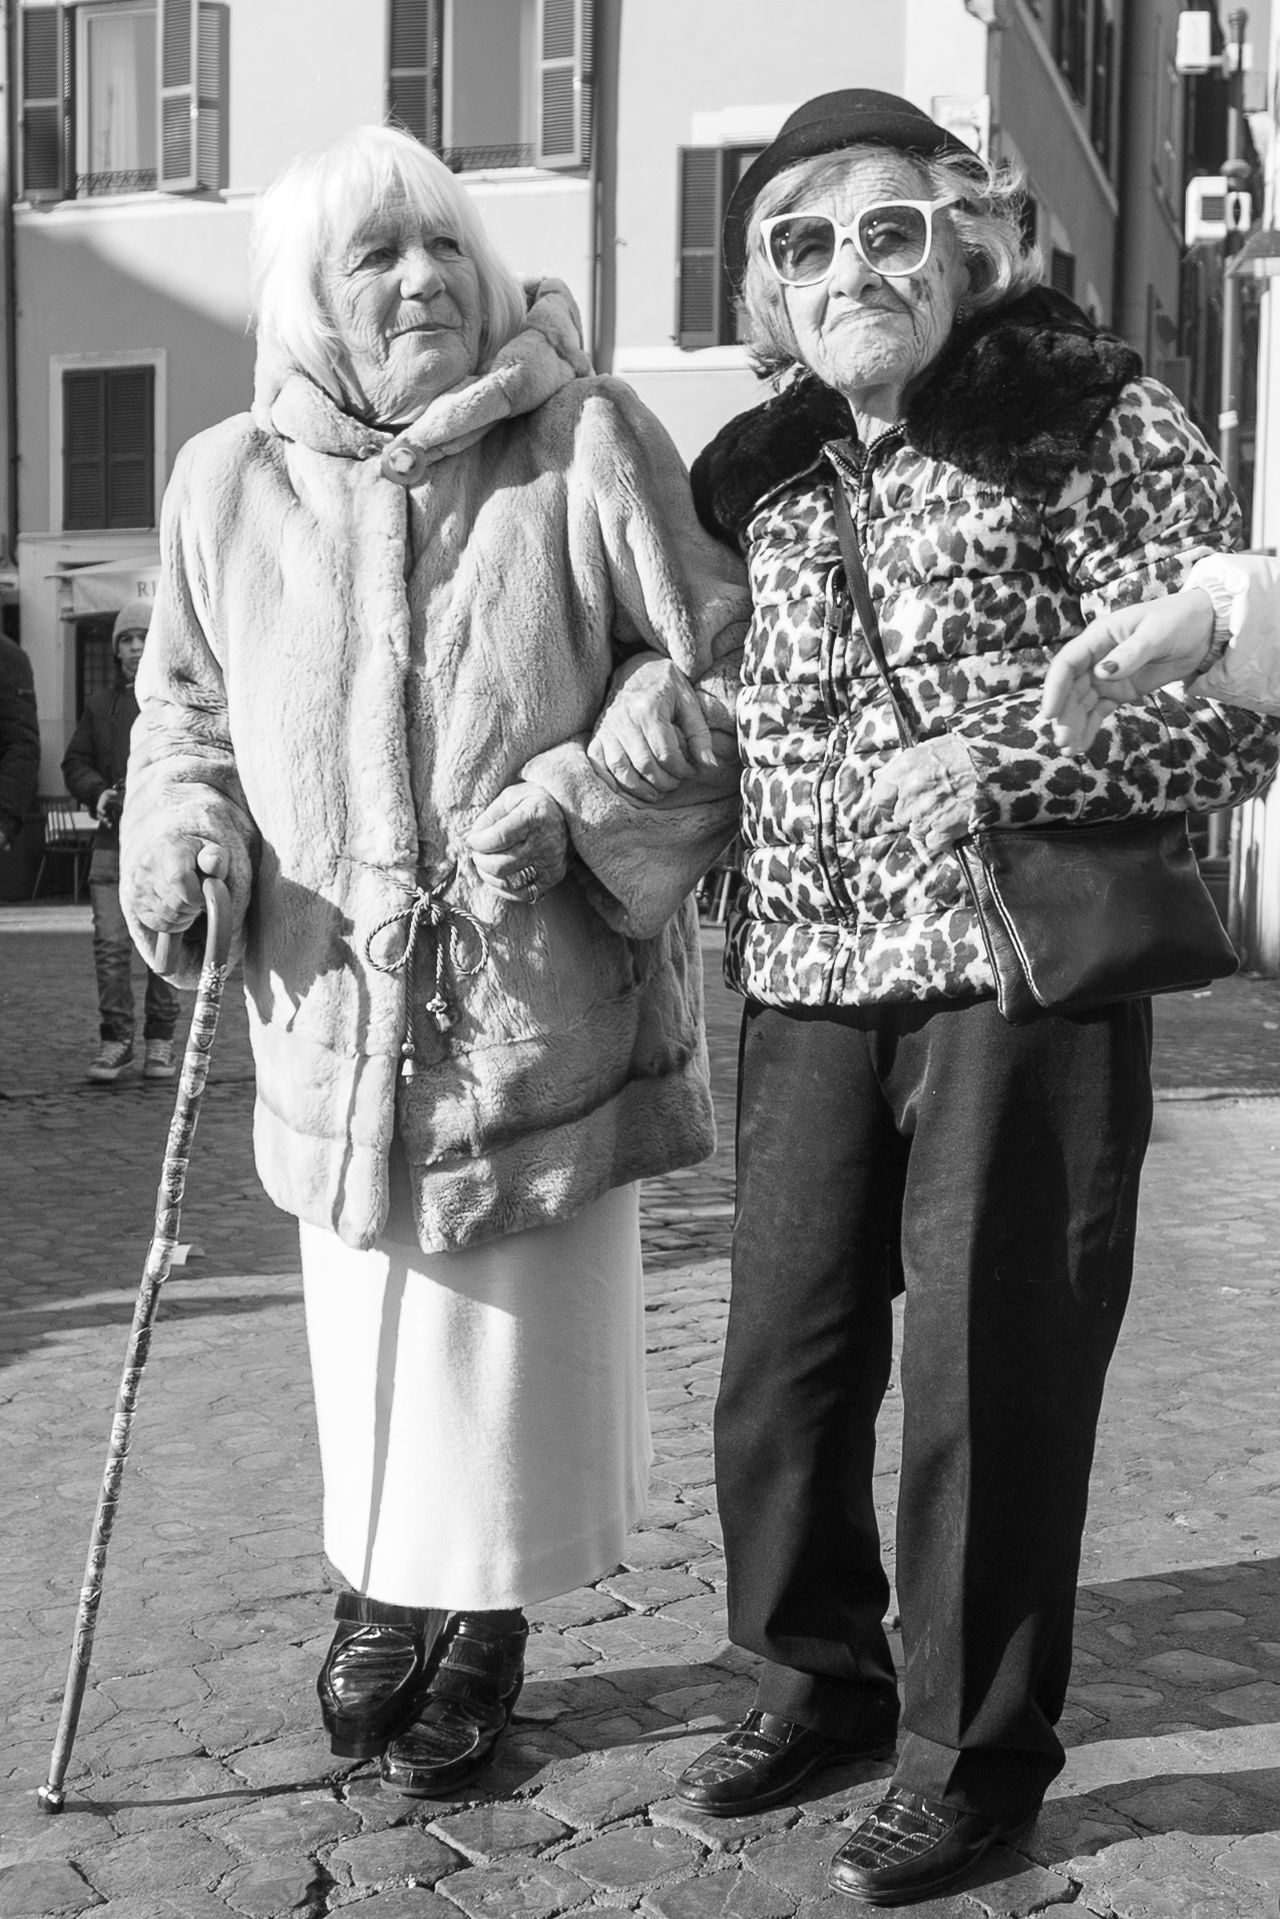 Adult Adults Only Attitude City Day Don't Give A F***! Fashion Fashion&love&beauty Full Length Fur Coat Lifestyles Never Get Old Never Growing Up... Old Ladies Old Lady Outdoors People Real People Street Street Photography Streetphotography Sun Glasses Swagger  Togetherness Young Attitude